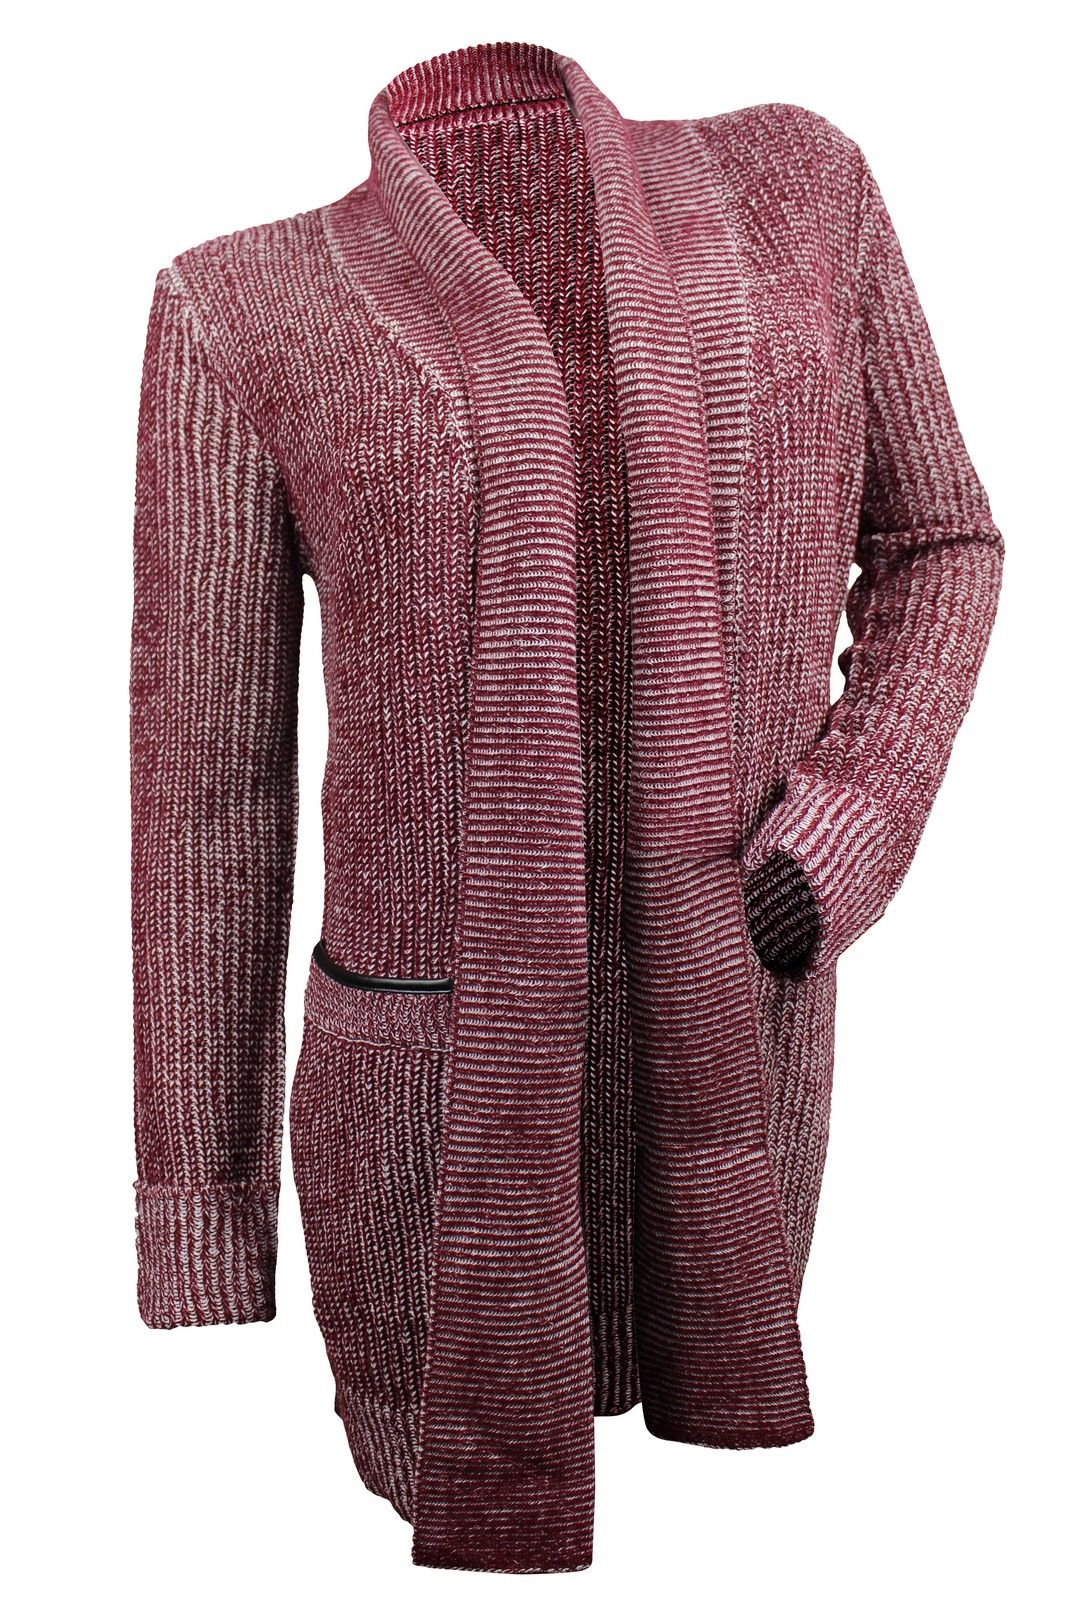 fb16a37d64b Romeo   Juliet Couture Women s Oxblood Ivory Marled Cardigan